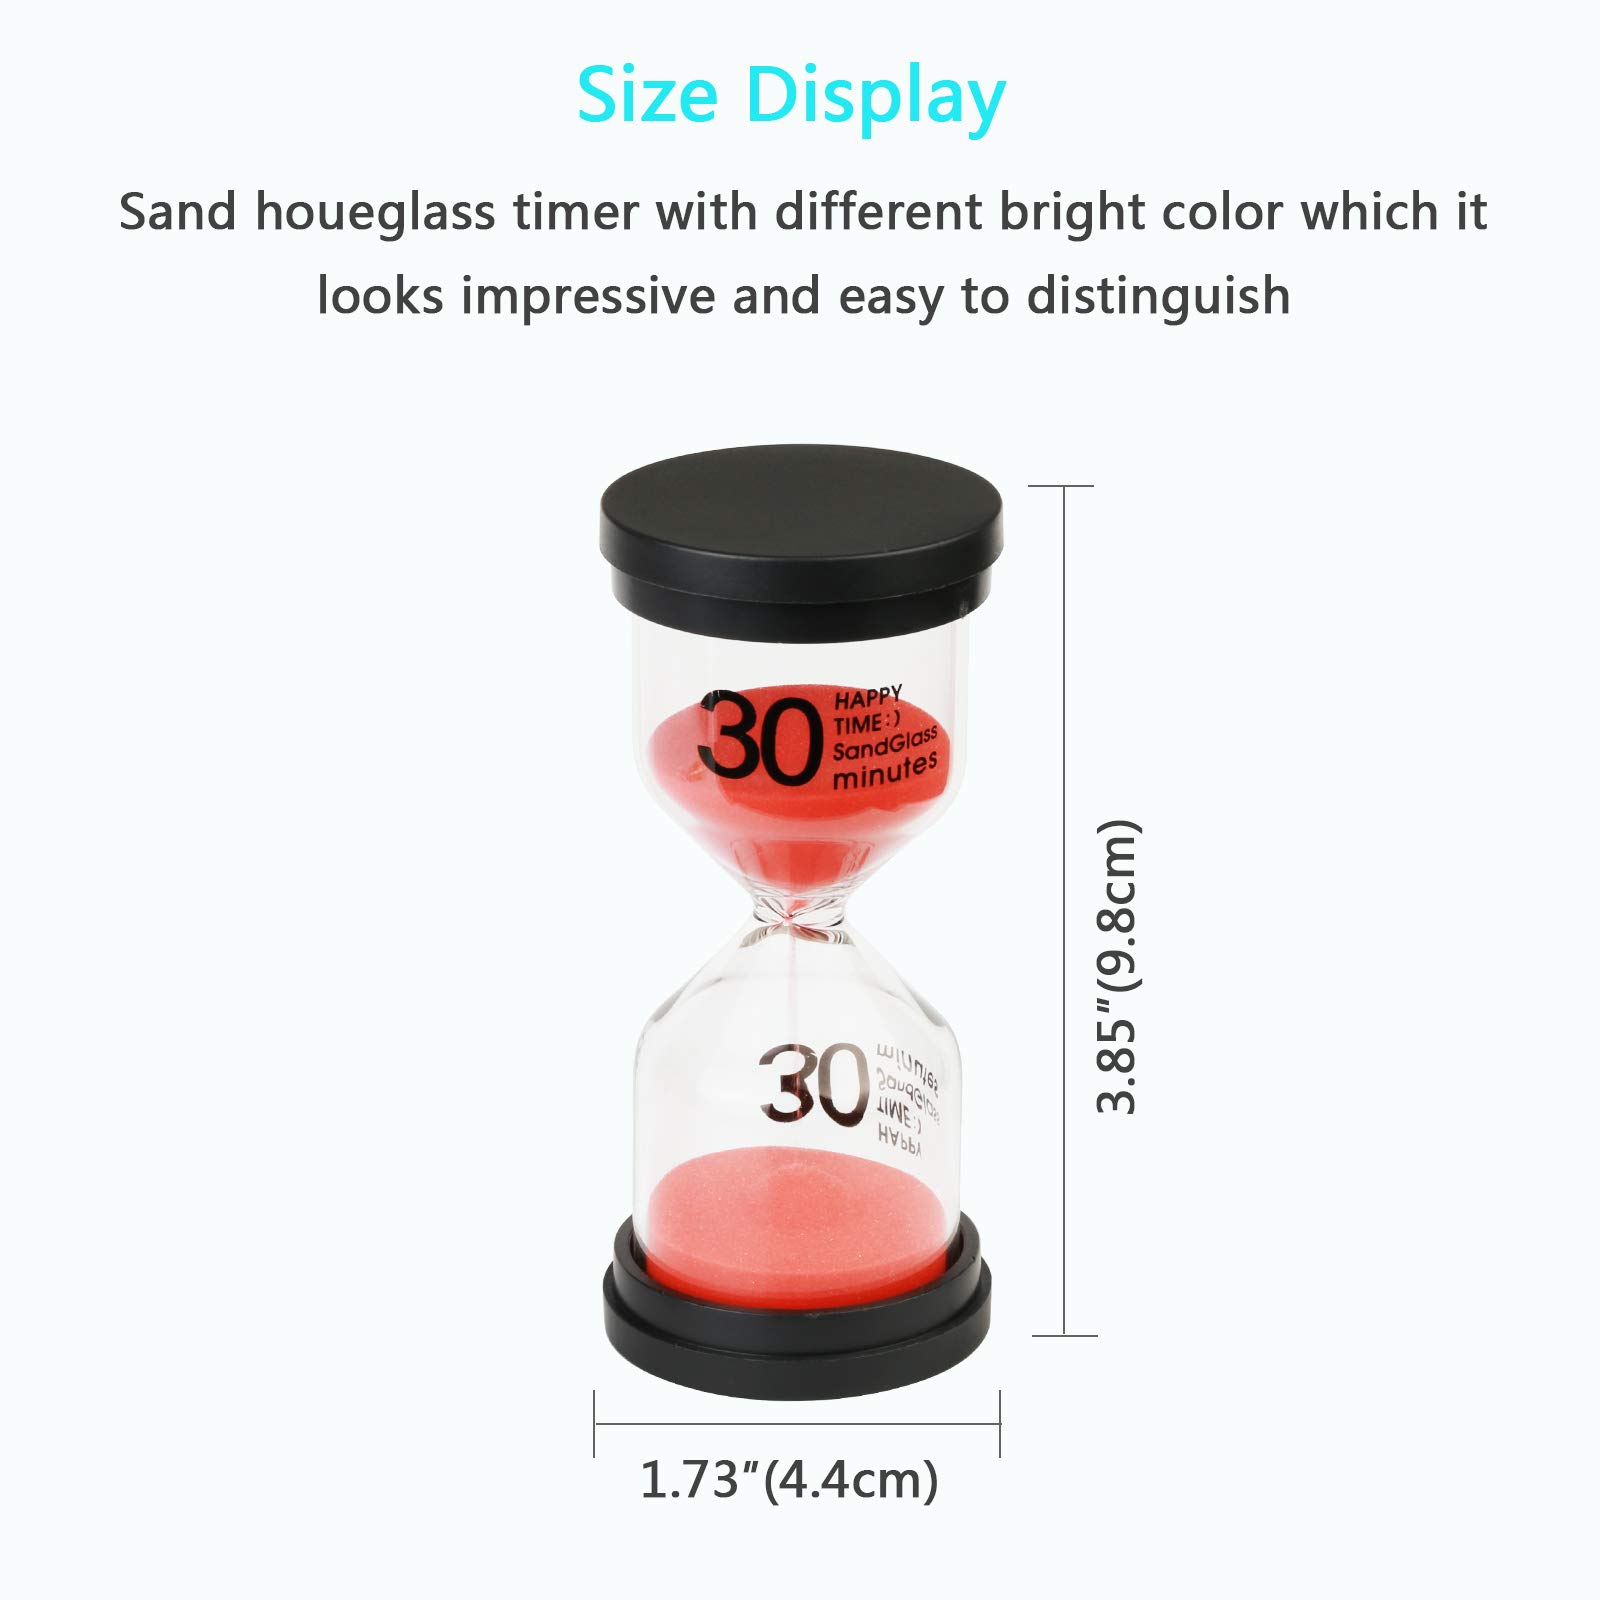 Sand Timer MEZOOM 6 Pcs Colorful Hourglass Sandglass 30 mins /15 mins /10 mins /5 mins /3 mins /1 min Sand Clock Timer with Gold Whistle for Kitchen Cooking Kids Classroom Home Decoration (Large) by MEZOOM (Image #7)